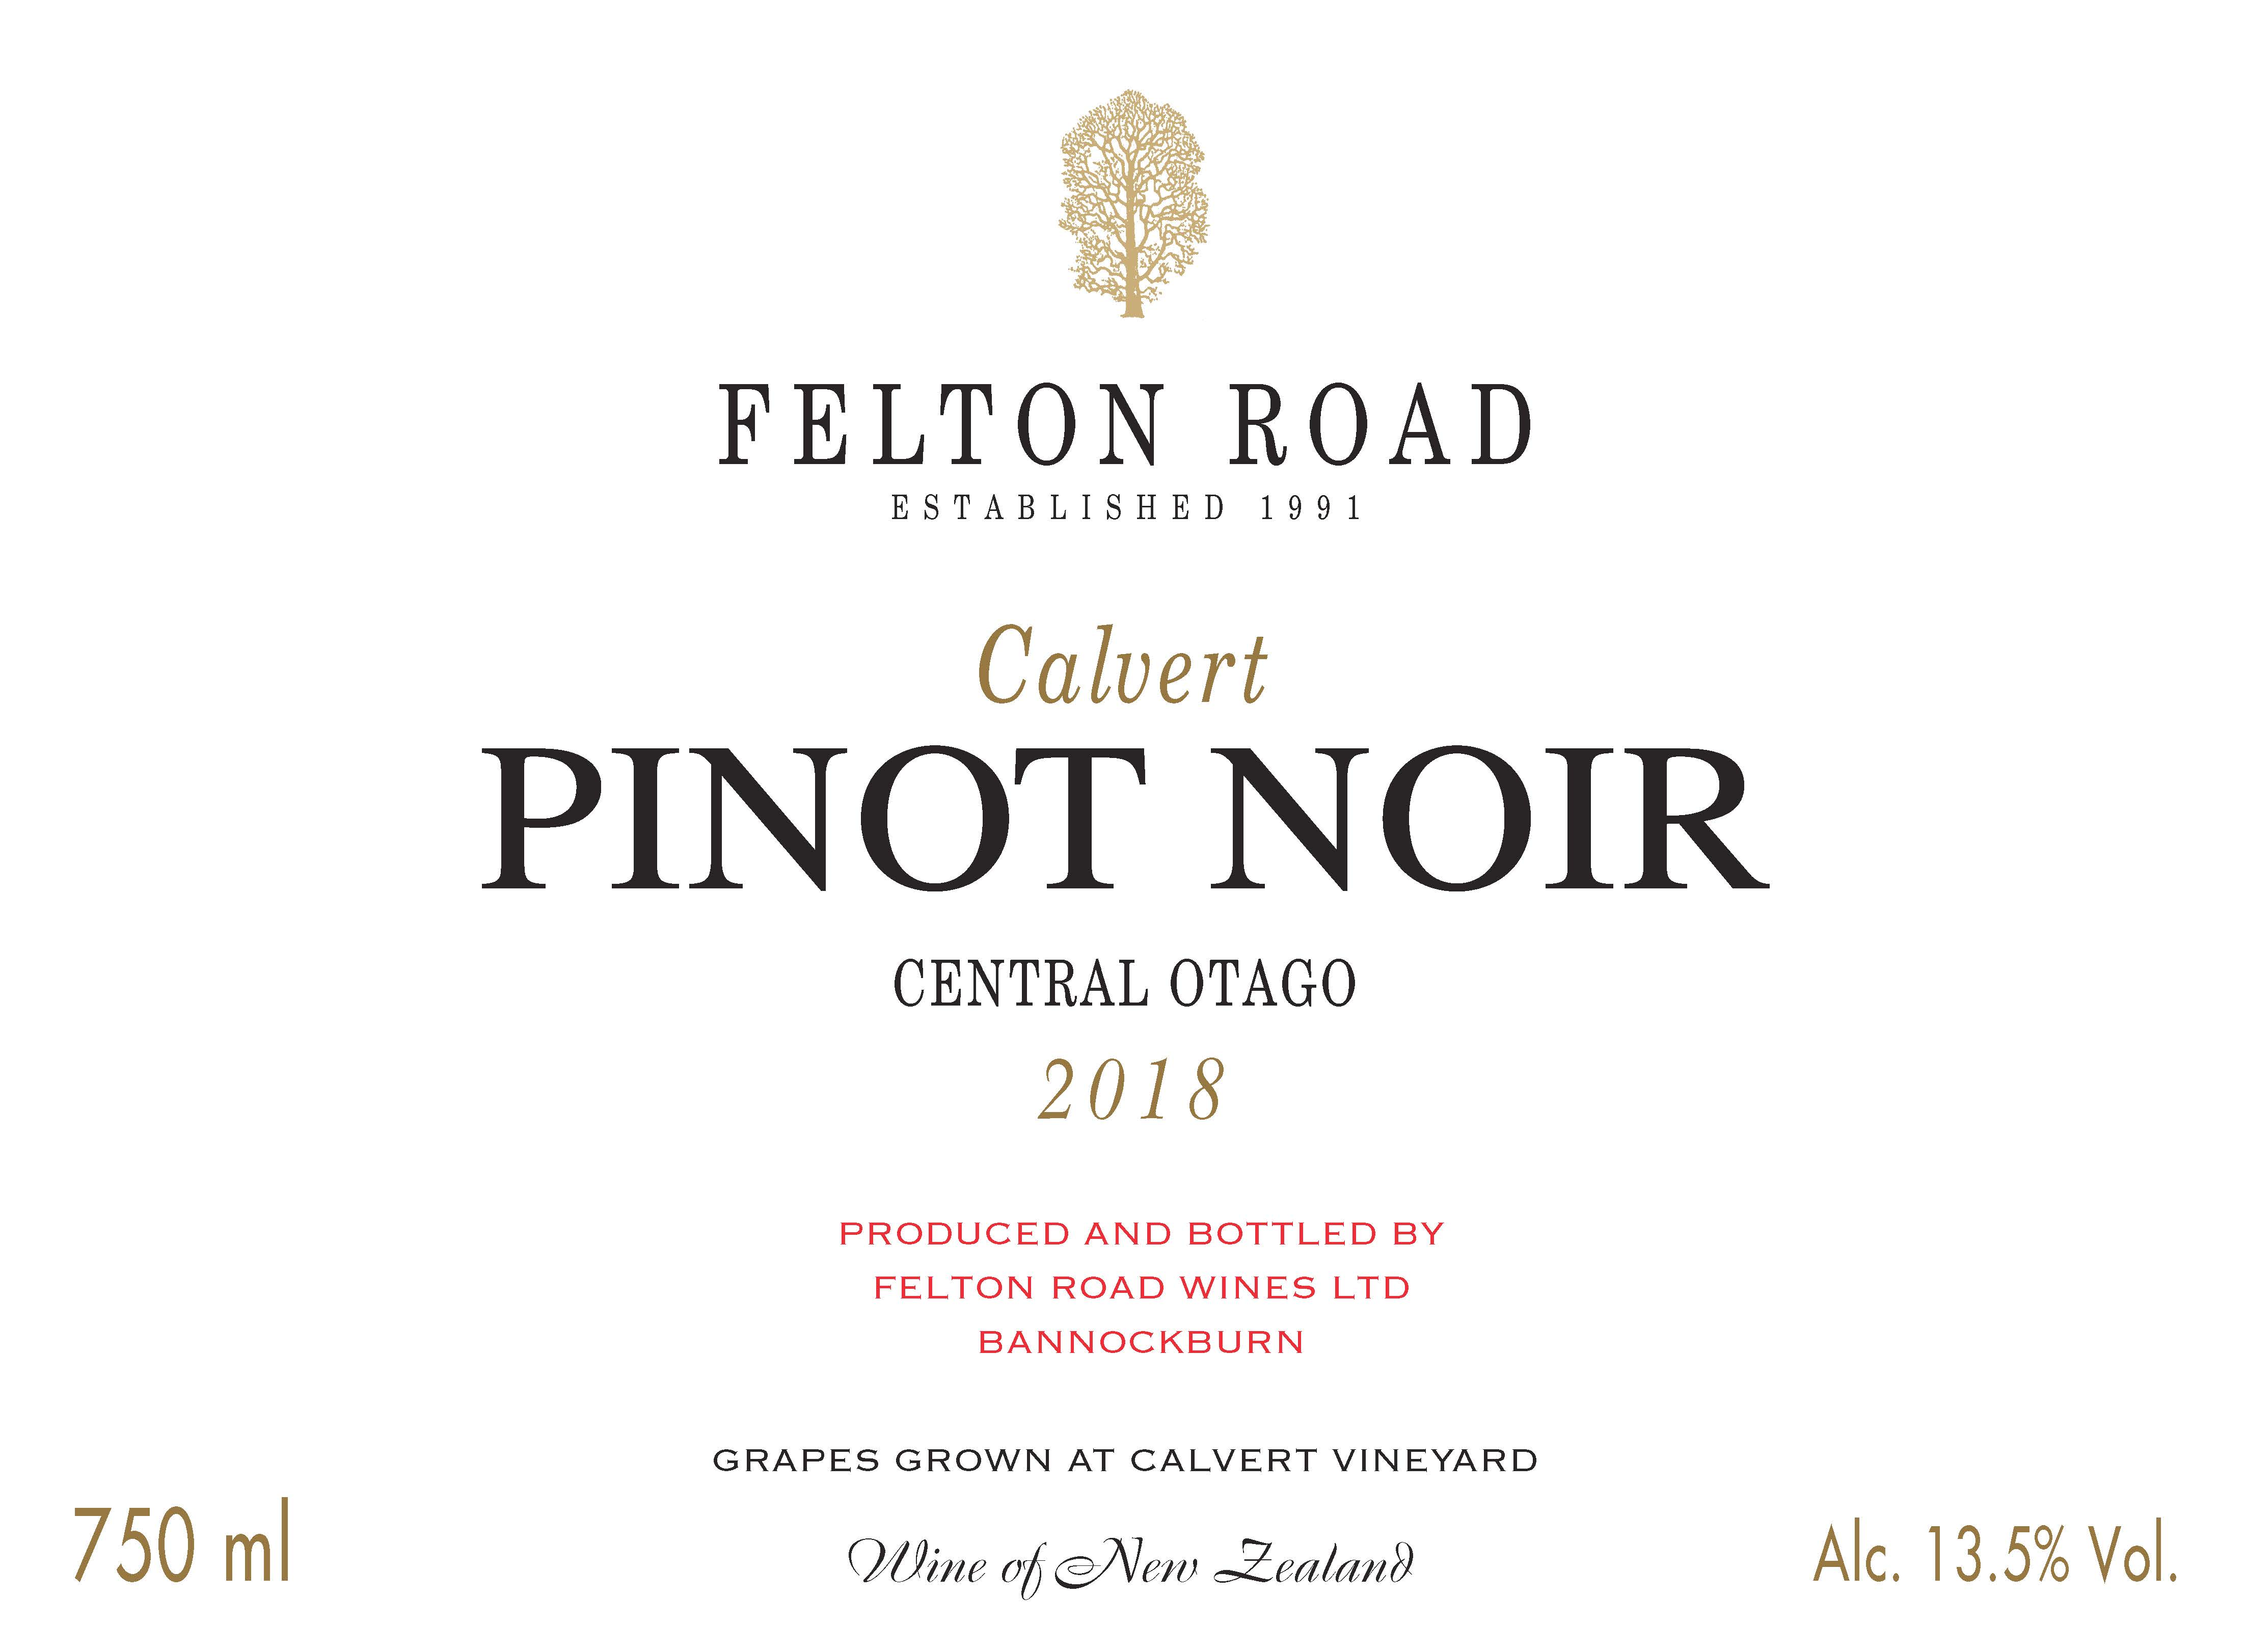 2018 Pinot Noir Calvert - Limit 6 bottles per customer image